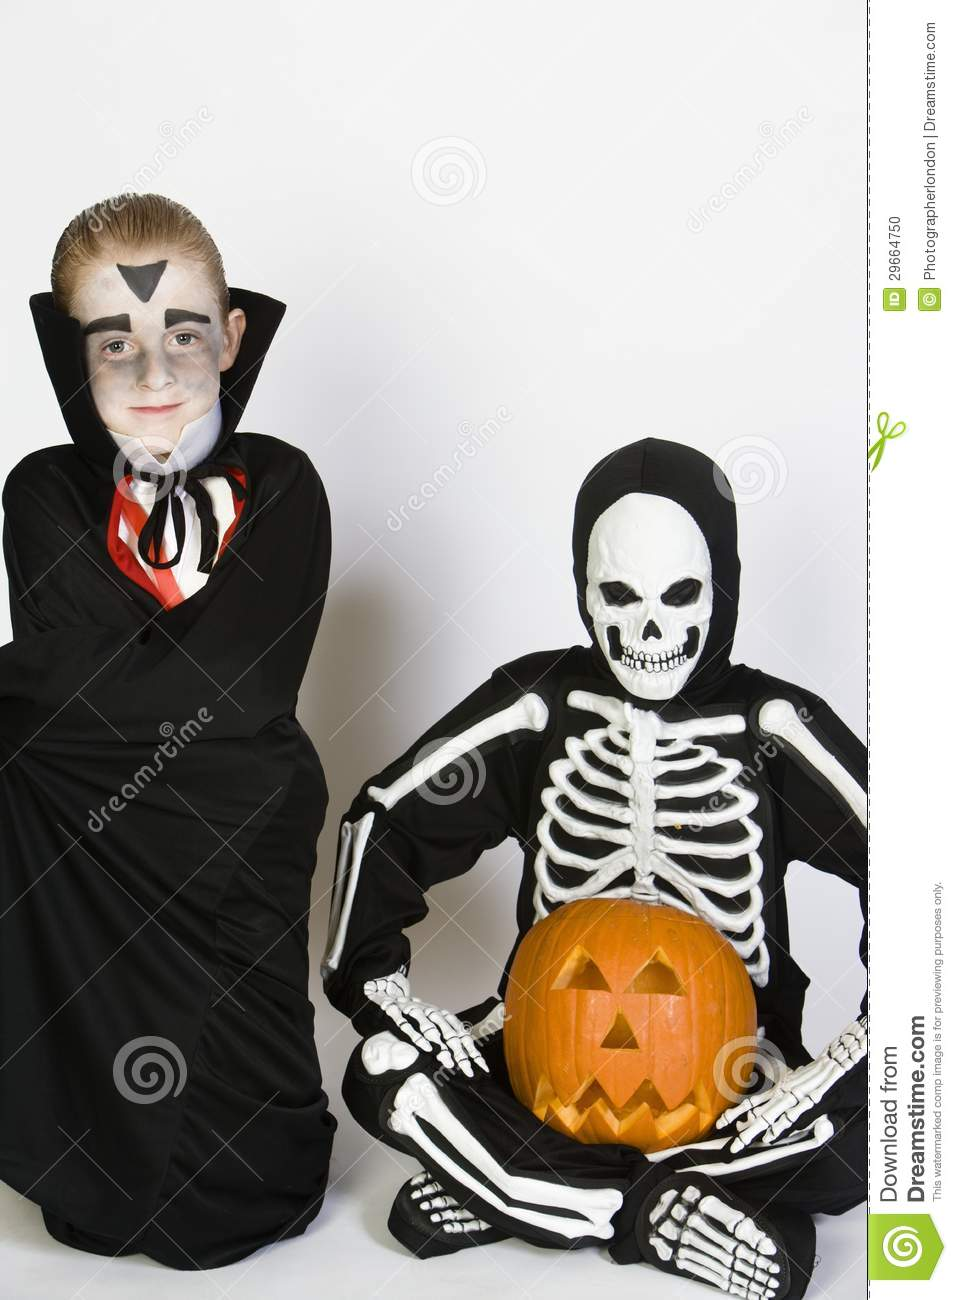 Two Boys Dressed In Halloween Costumes Stock Photo - Image: 29664750